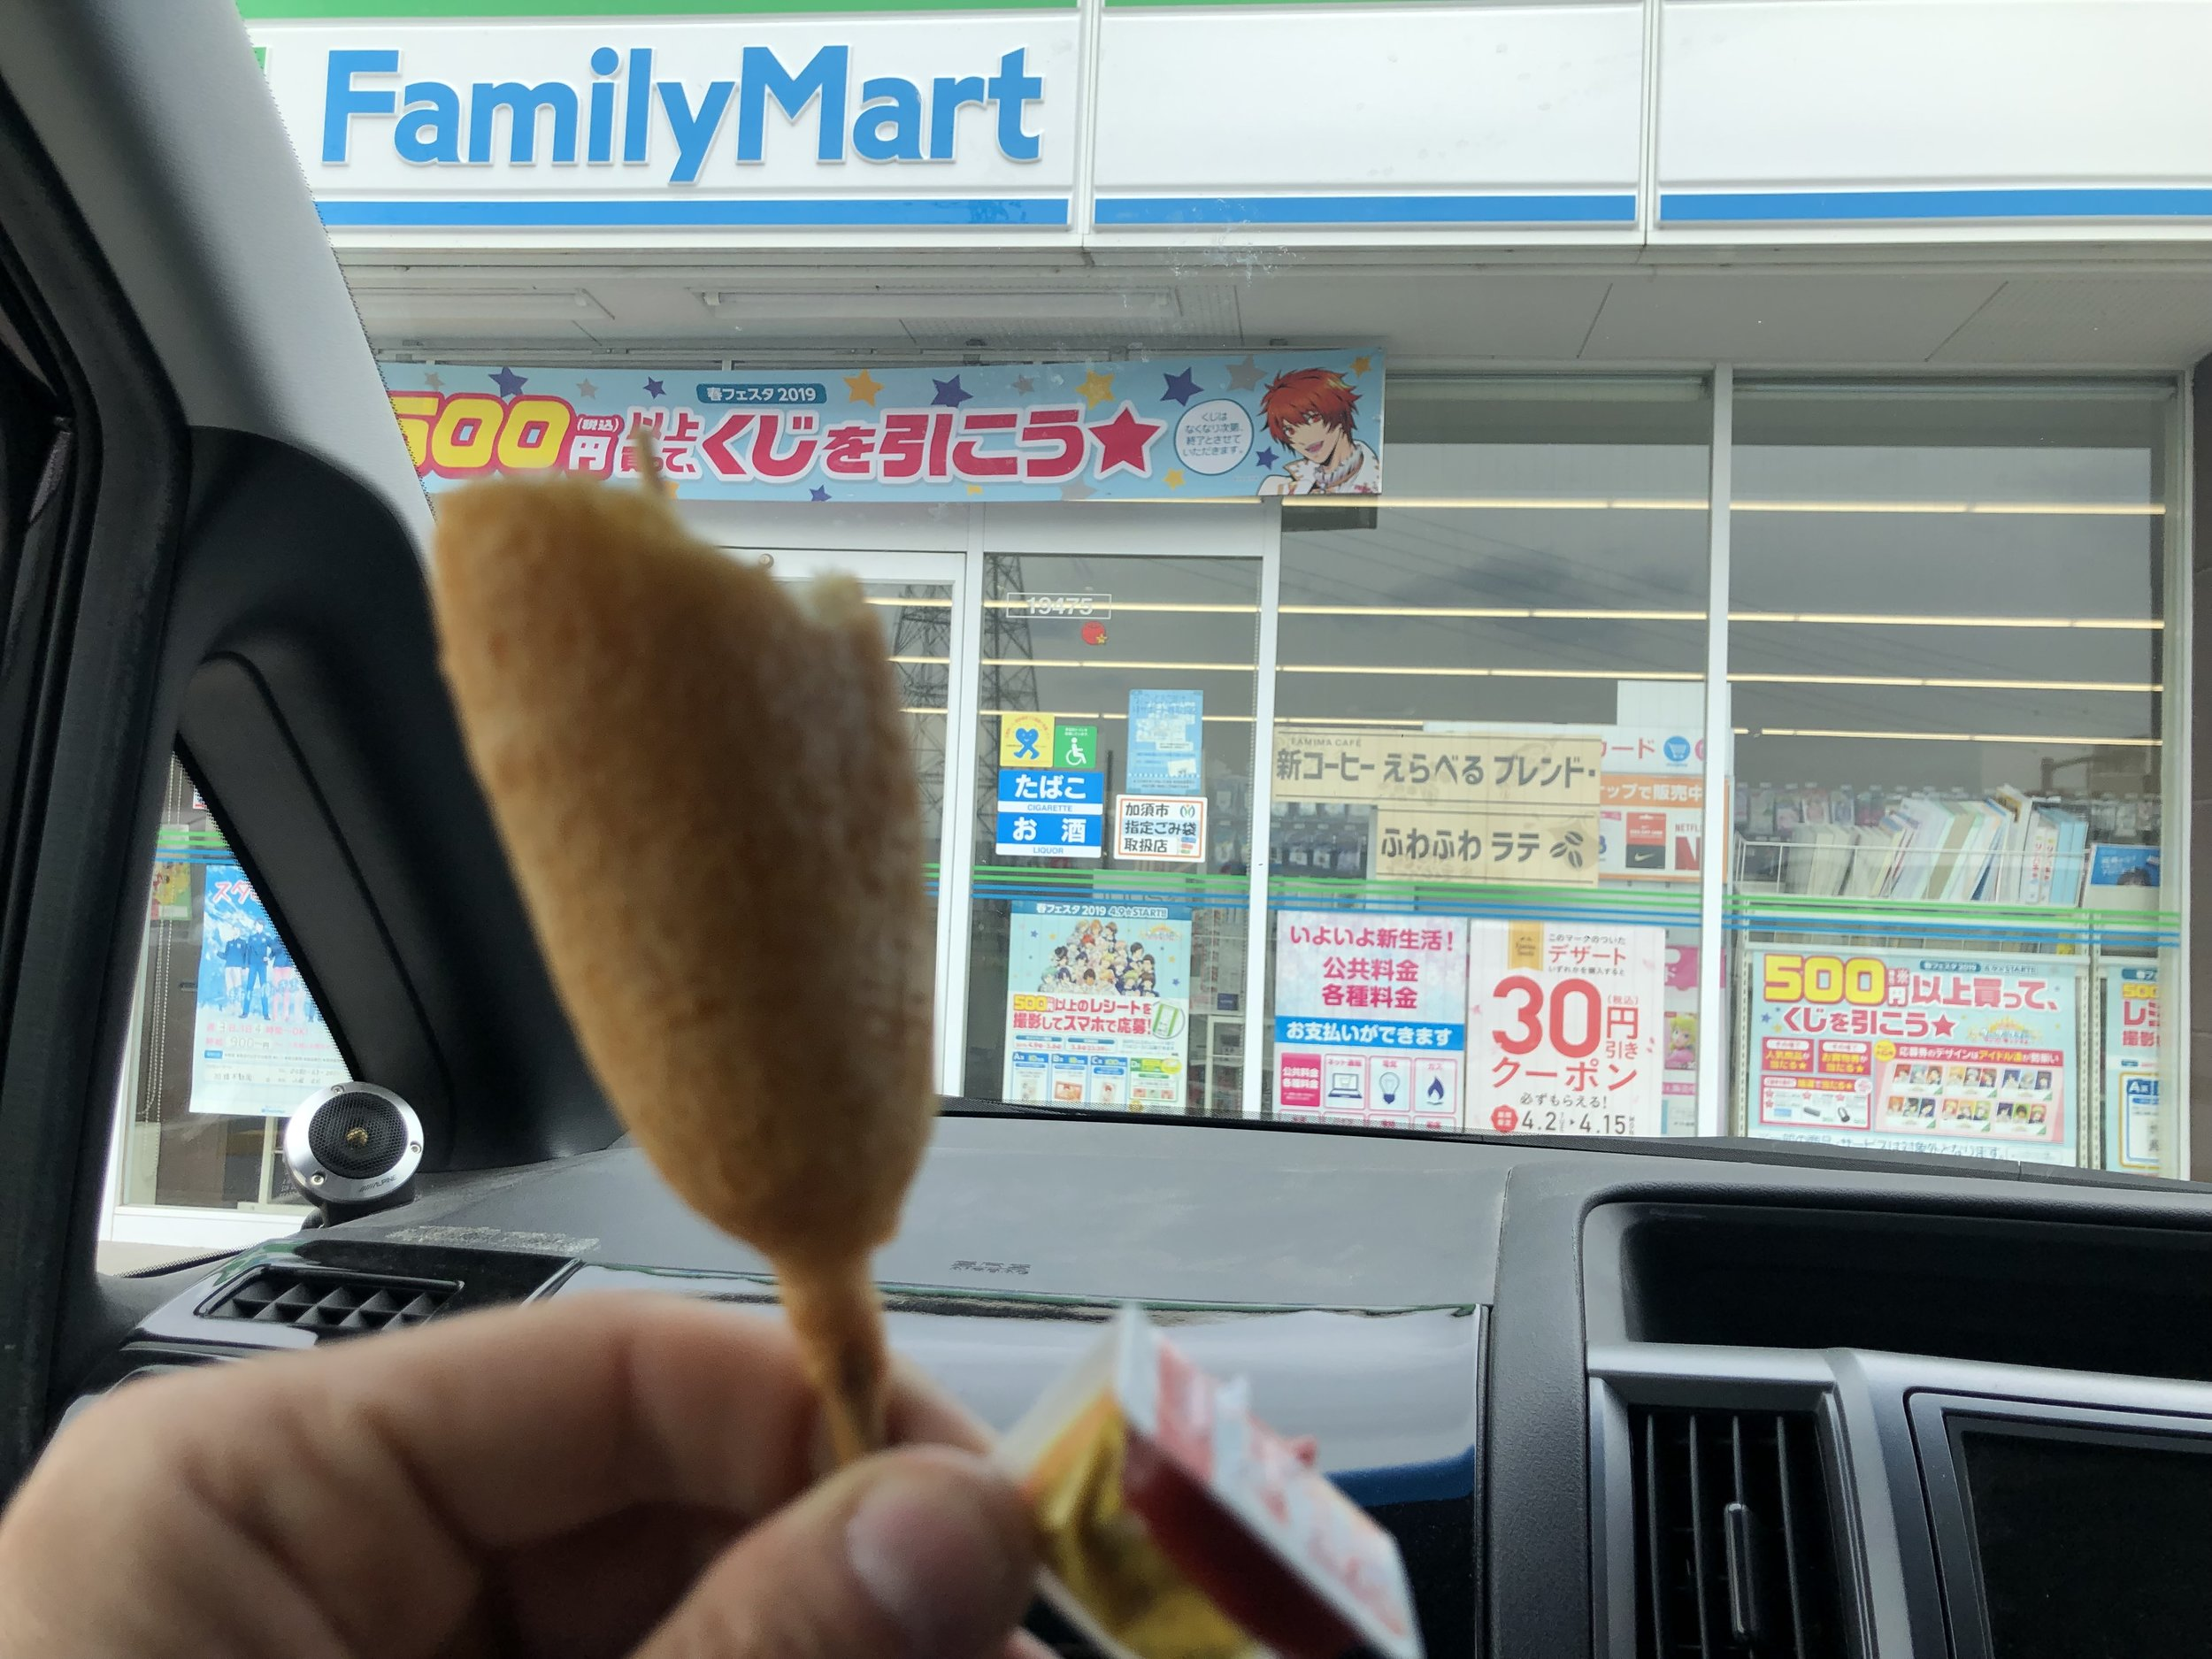 No corndog like a 7/11 or Family Mart corndog. I don't eat this shit at home, but it's too damn good here. Japan is so wild, look at the little ketchup/mustang packet. You fold it in half to break it open and then squeeze it together to dispense the perfect combo. Genius Japan, genius.